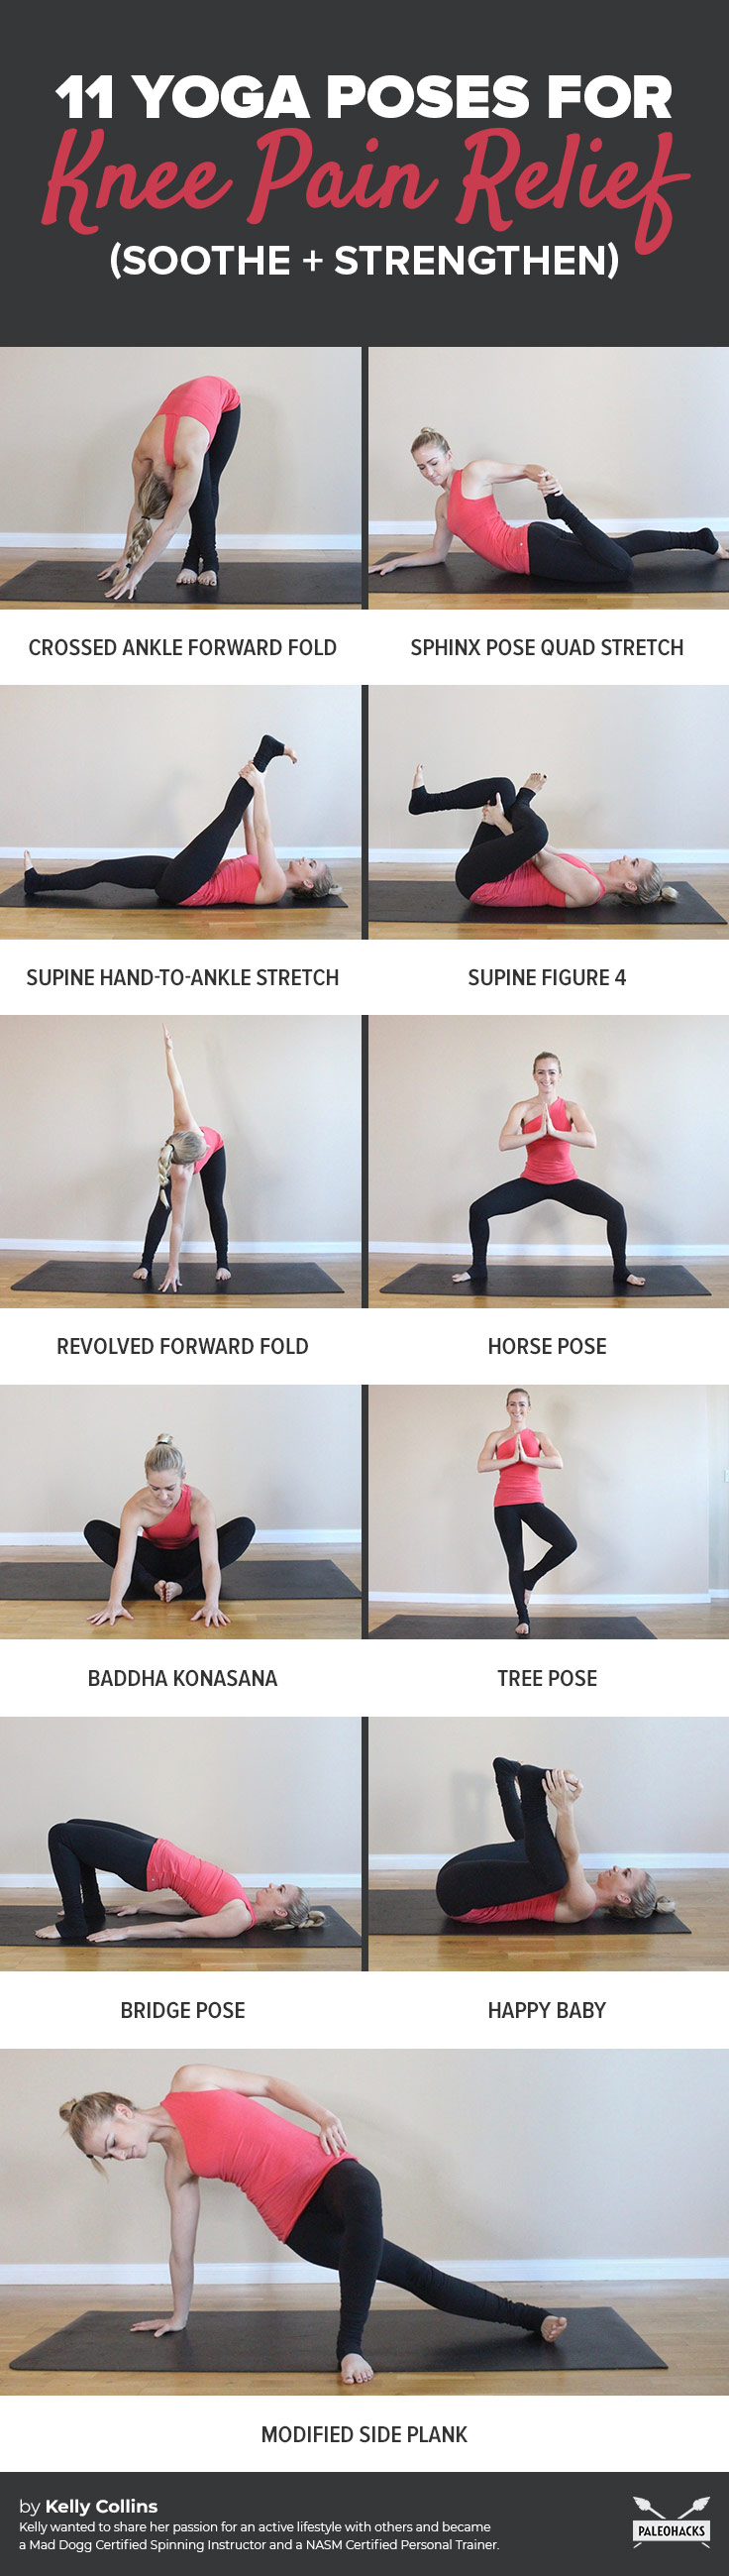 11-Yoga-Poses-For-Knee-Pain-Relief-infog.jpg